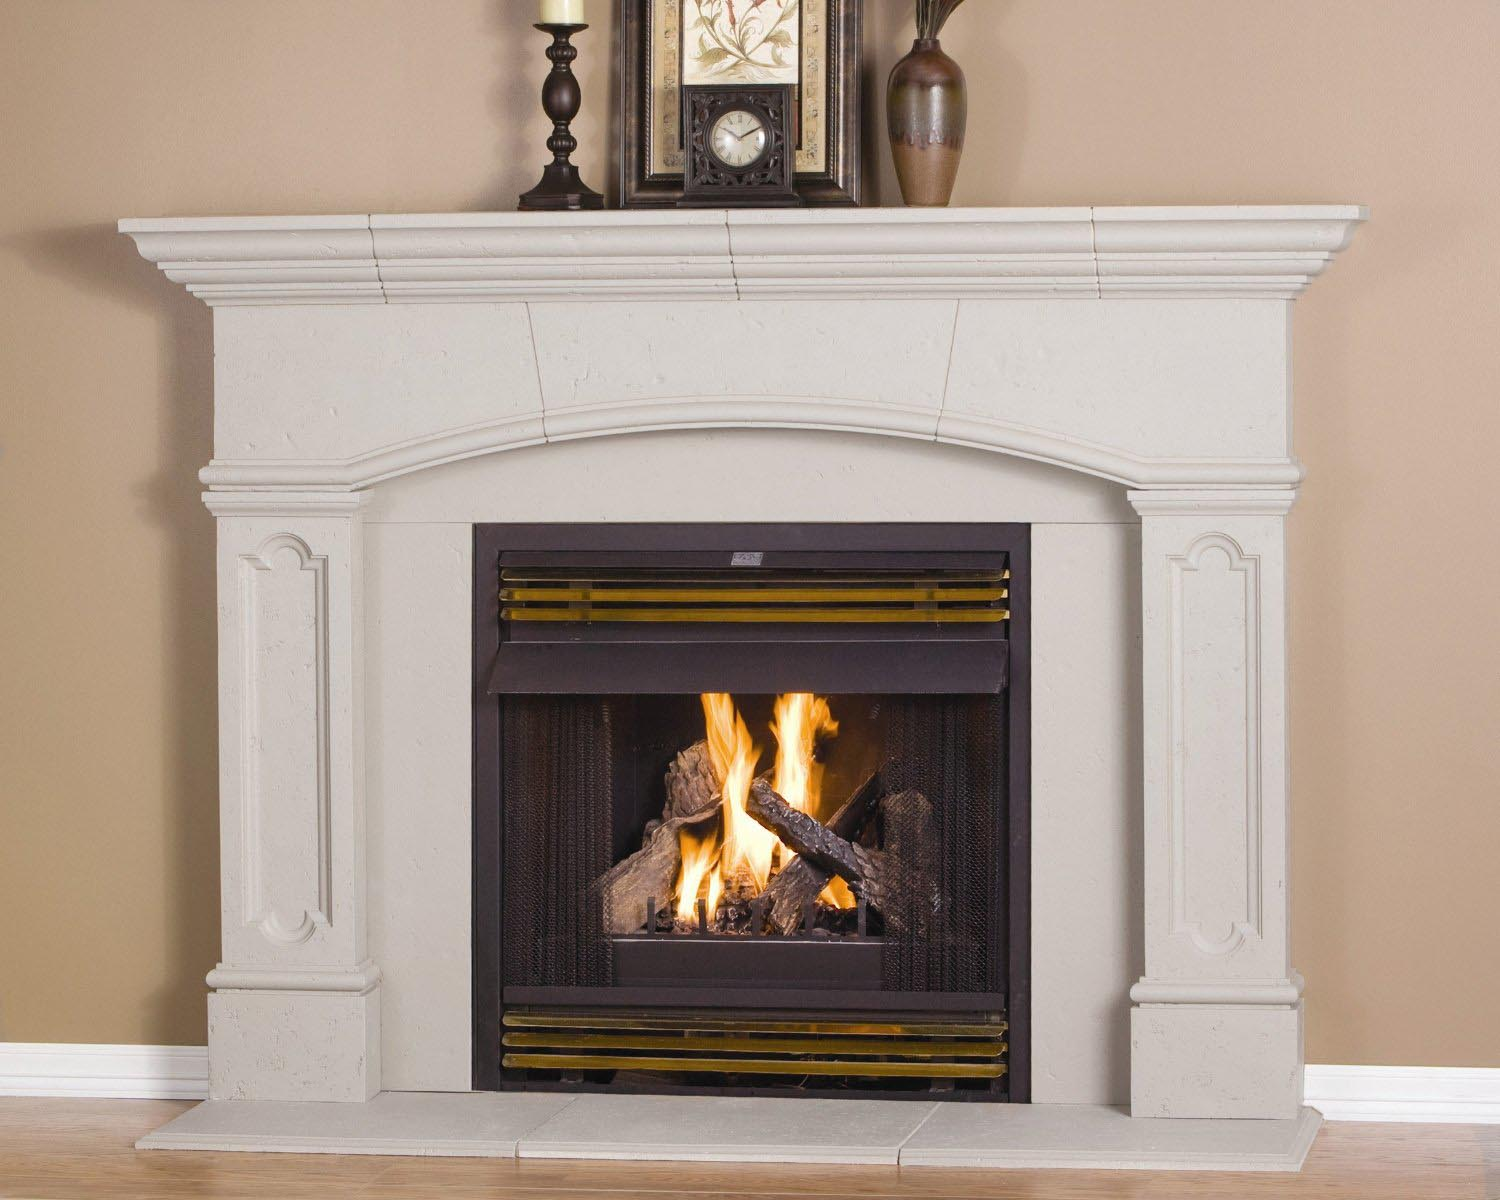 Fireplace mantel surrounds ideas fireplace designs - Brick fireplace surrounds ideas ...